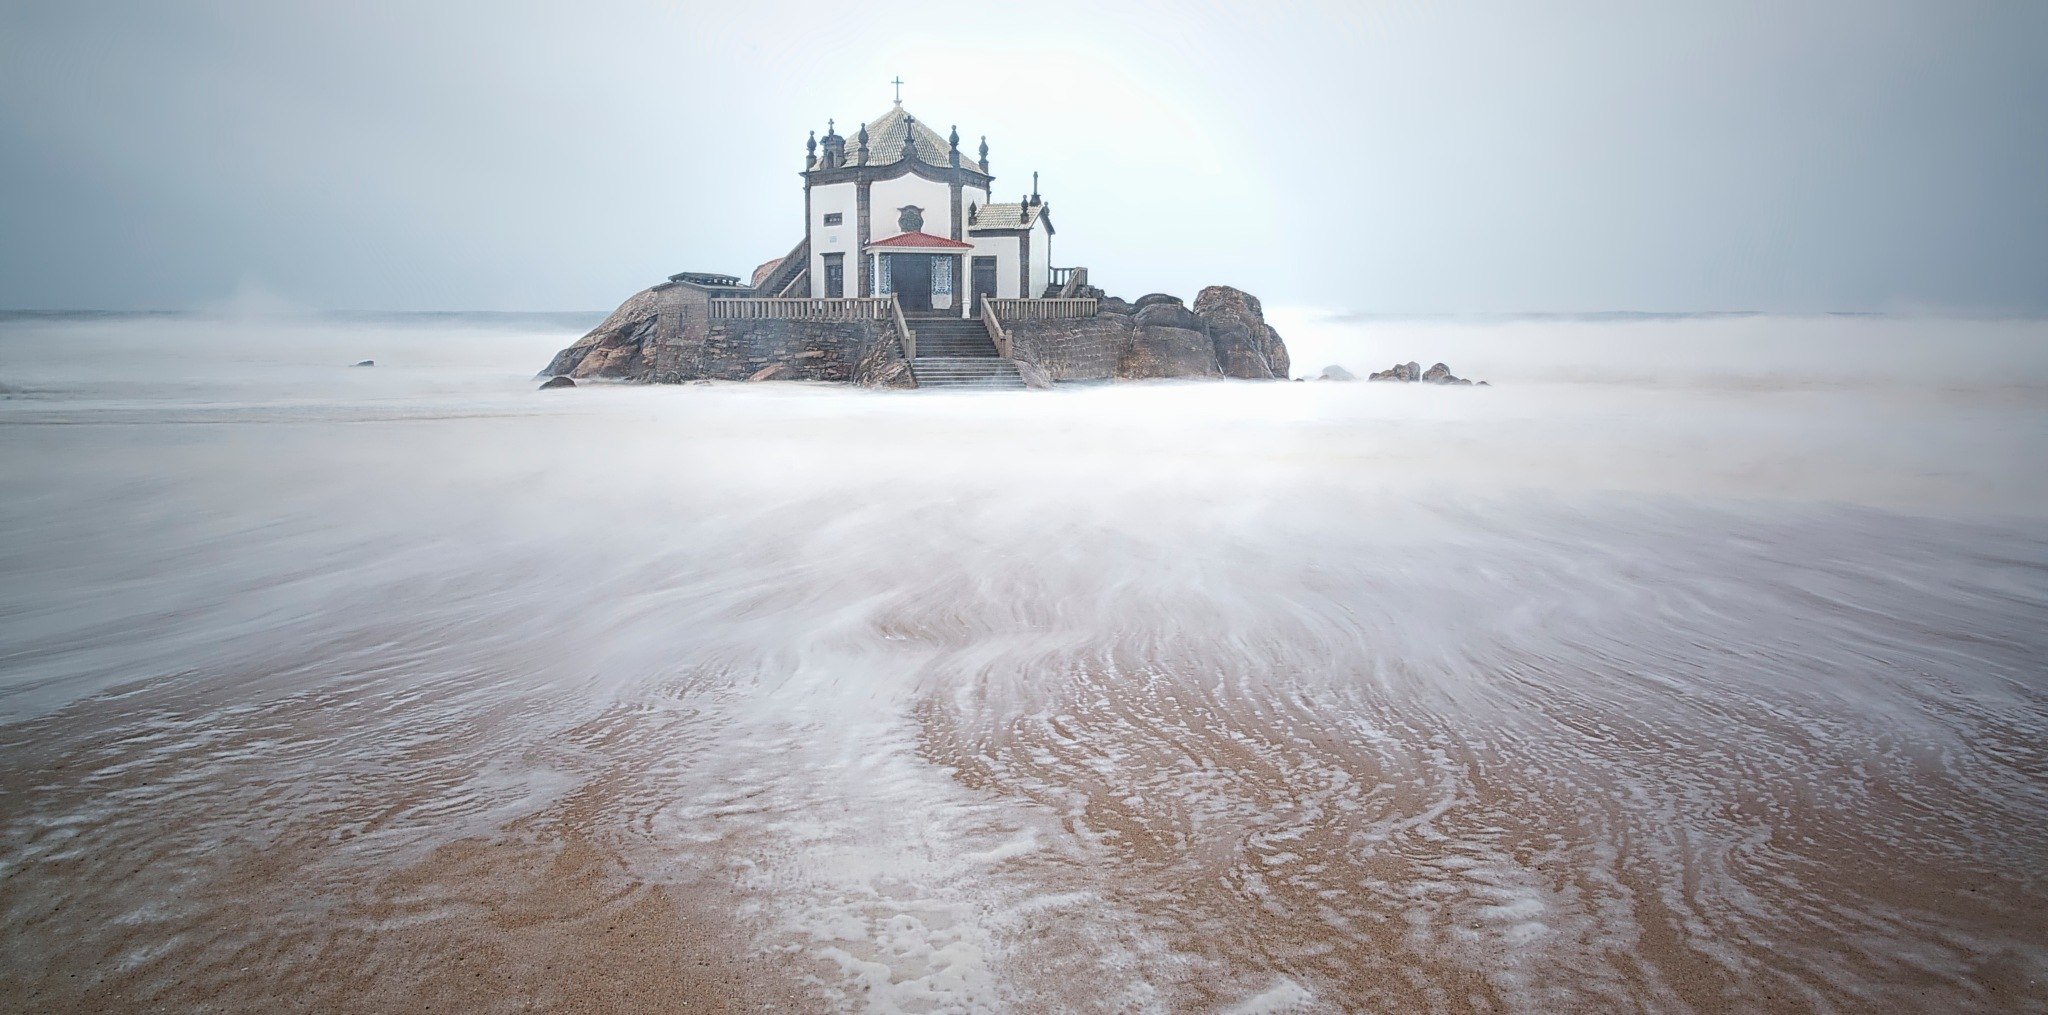 Chapel in the sea by Linette Simões